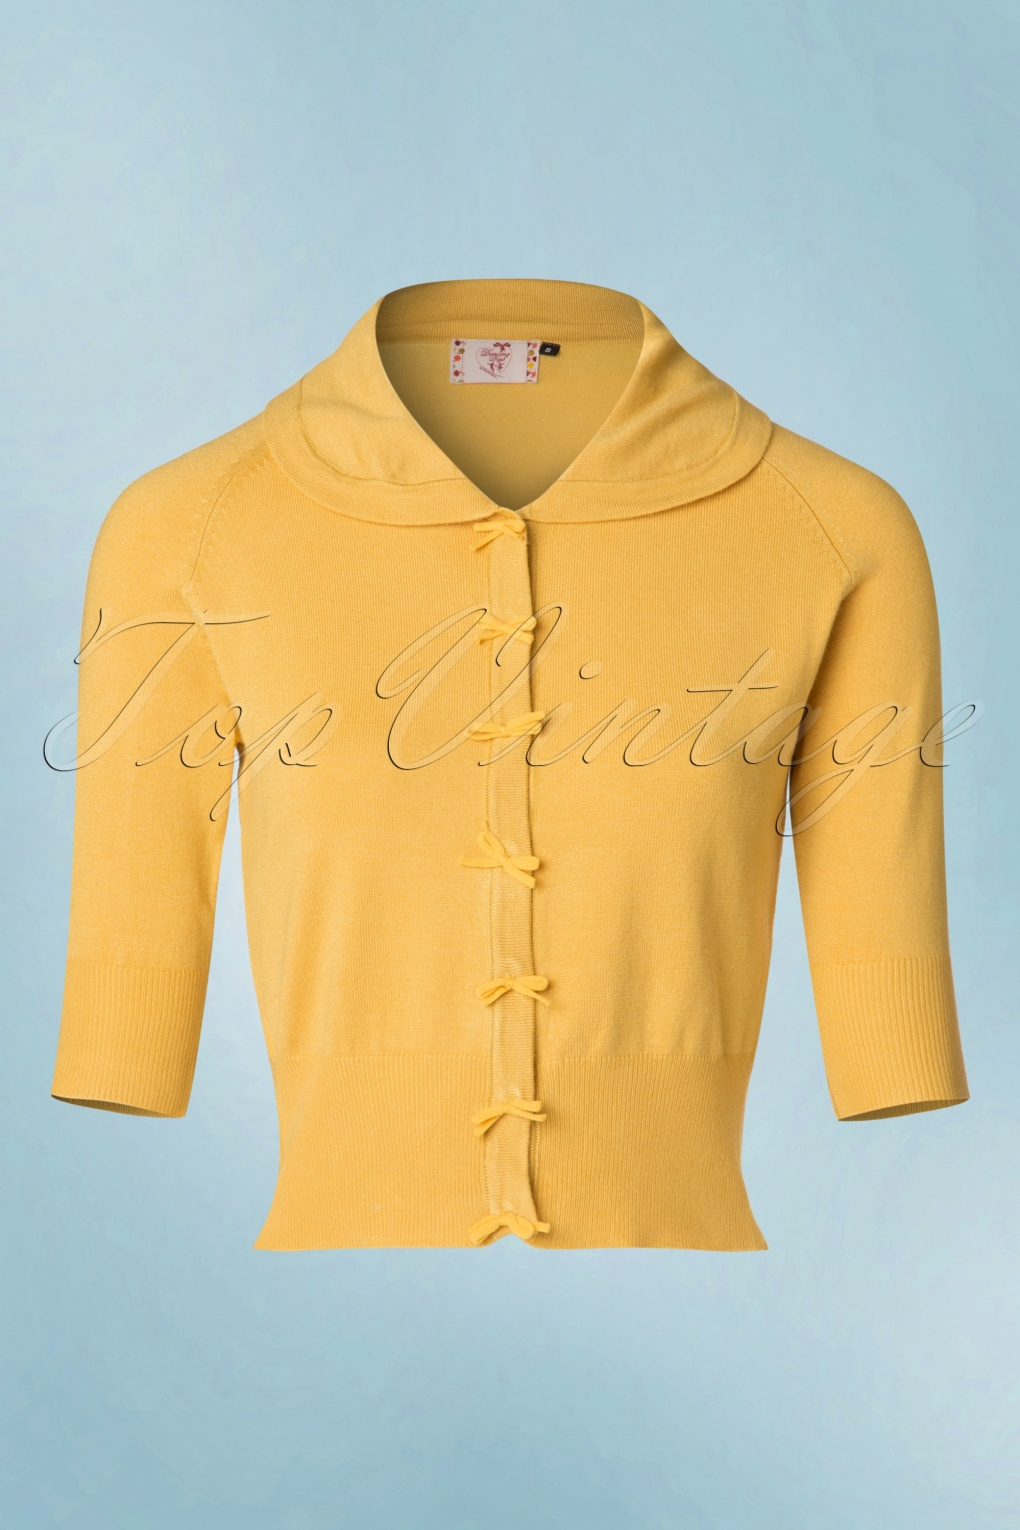 1940s Sweater Styles 40s April Bow Cardigan in Mustard Yellow £35.08 AT vintagedancer.com